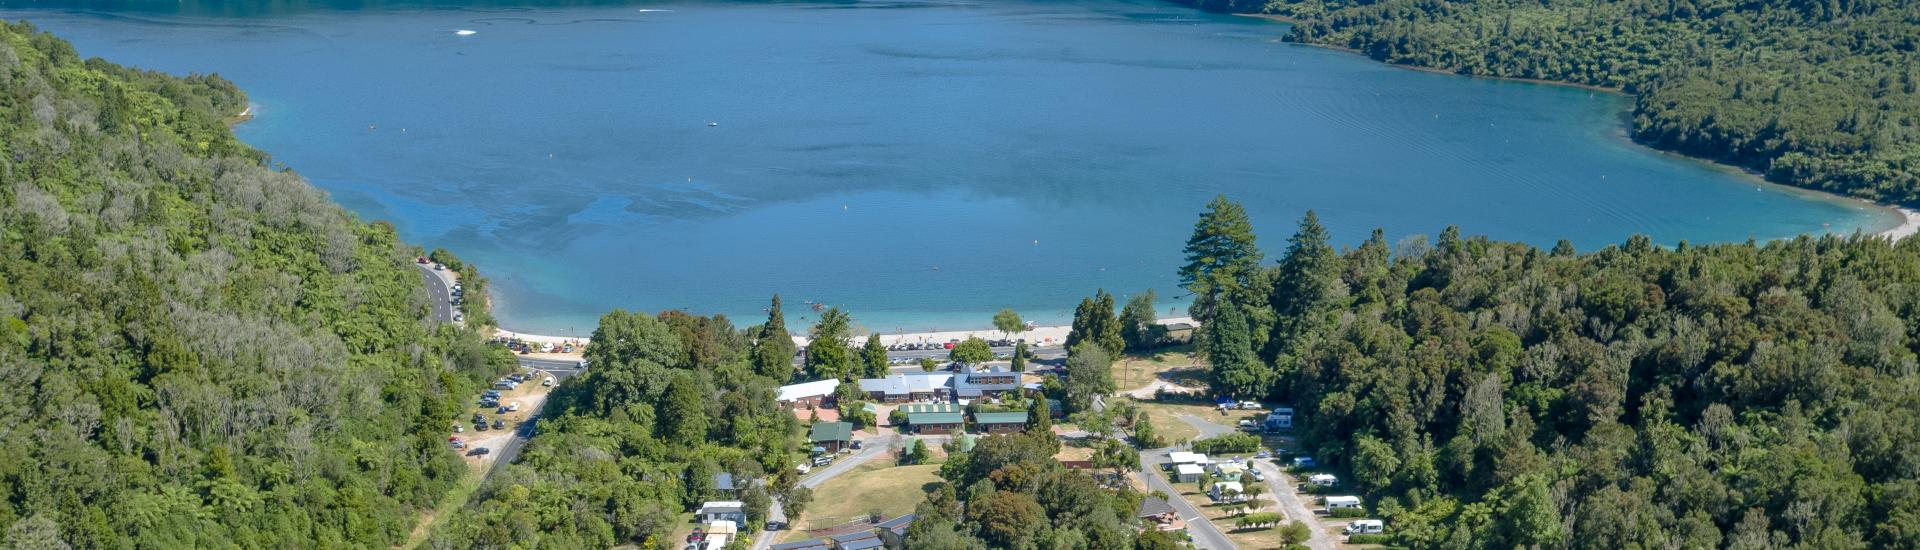 park map blue lake top 10 holiday park rotorua